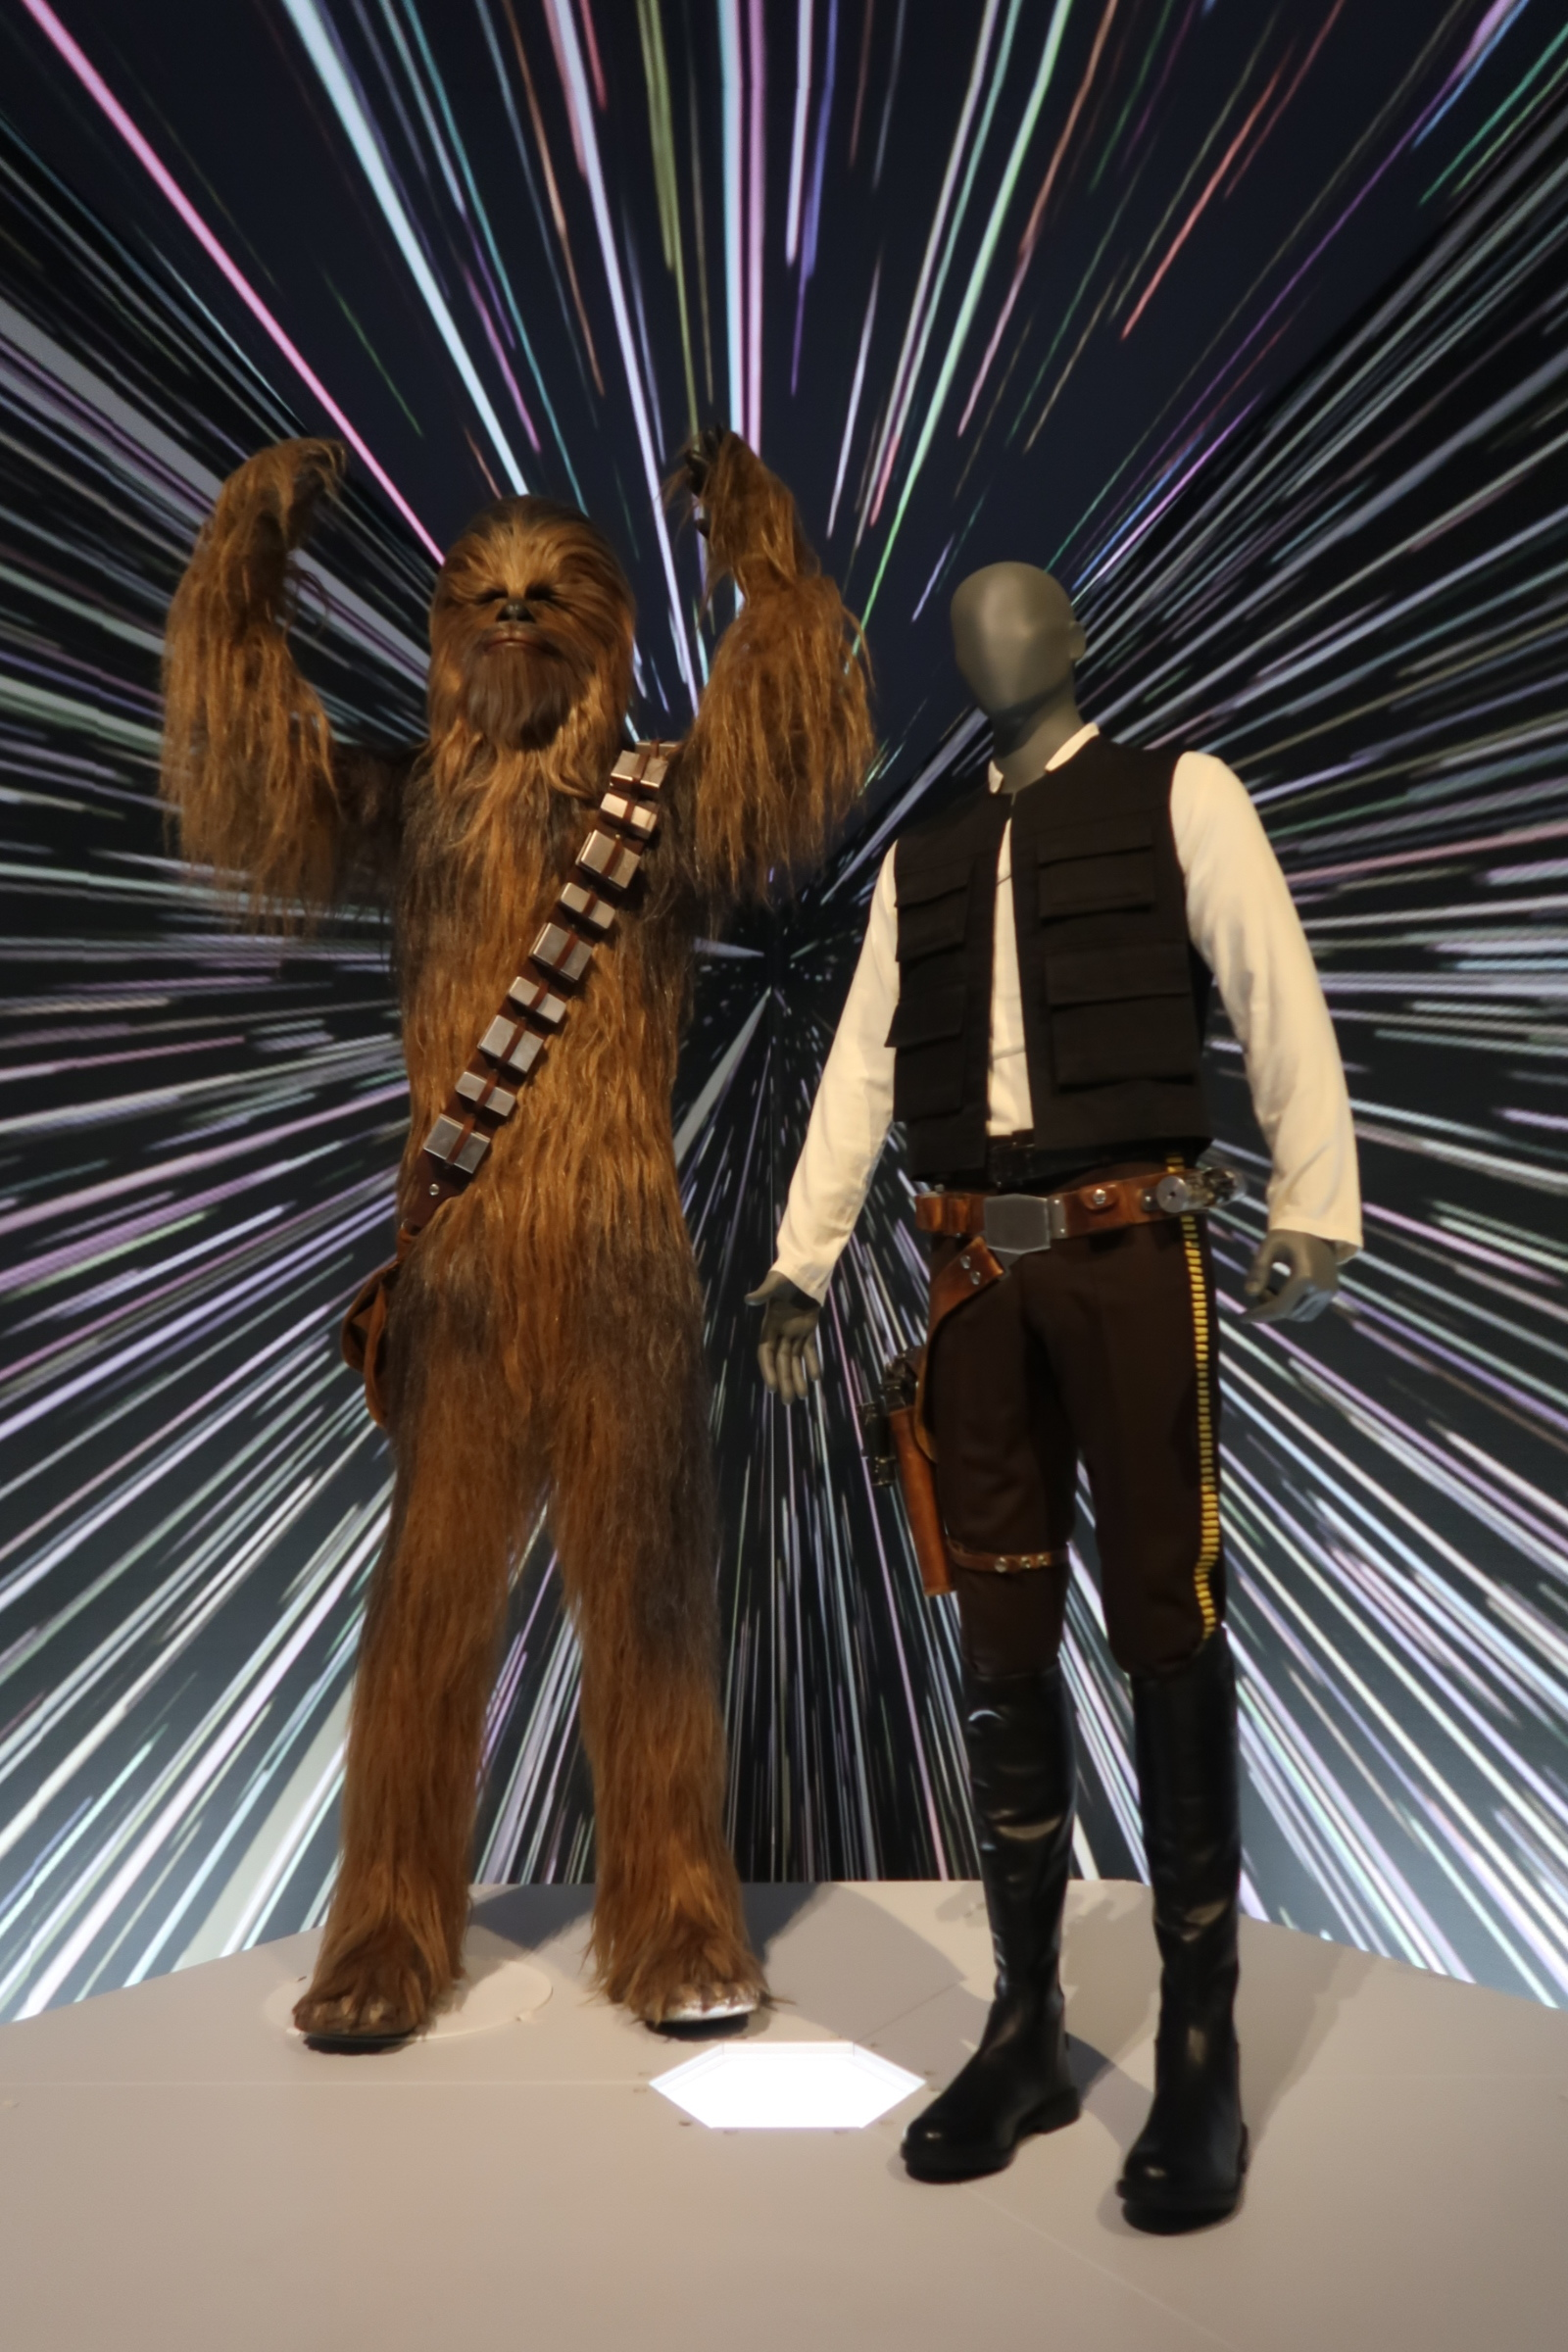 Of course, we HAD to stop by the  Star Wars Costume Exhibit  while in Cincinnati! This is a traveling exhibit, and a must see for any Star Wars fan!